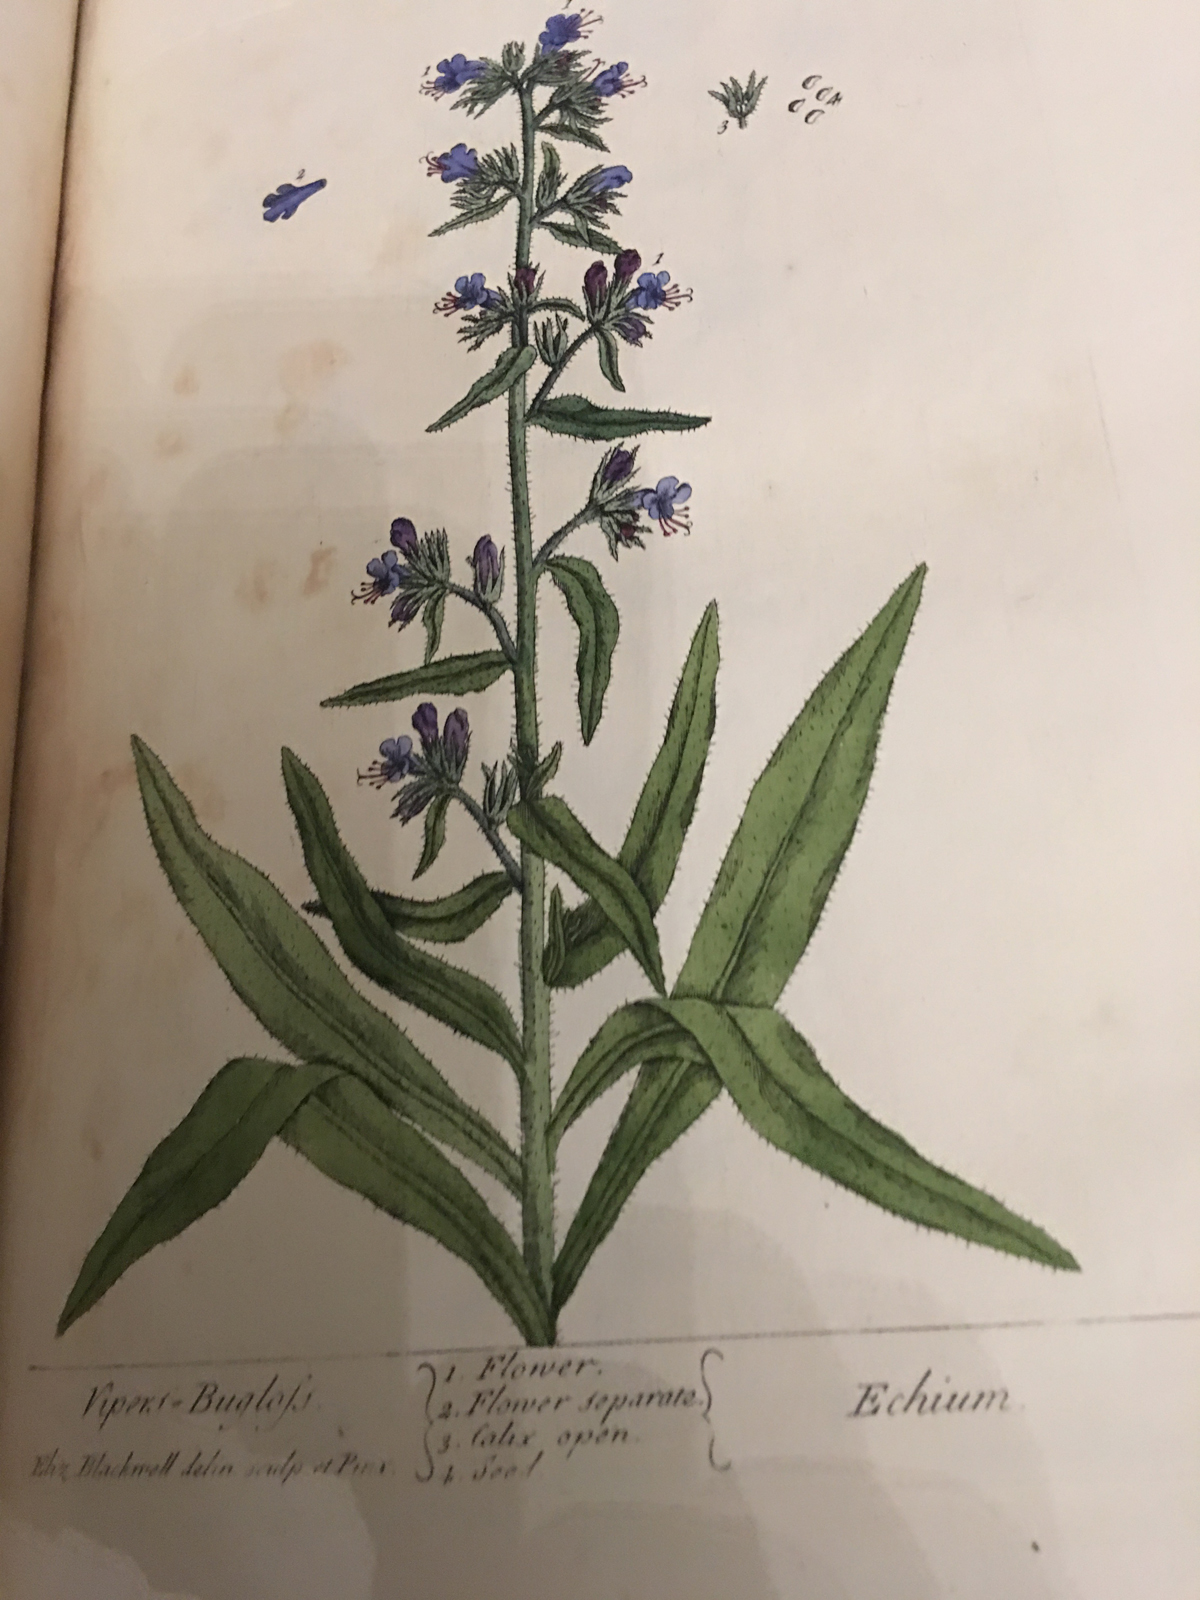 echium from elizabeth blackwell's a curious herbal